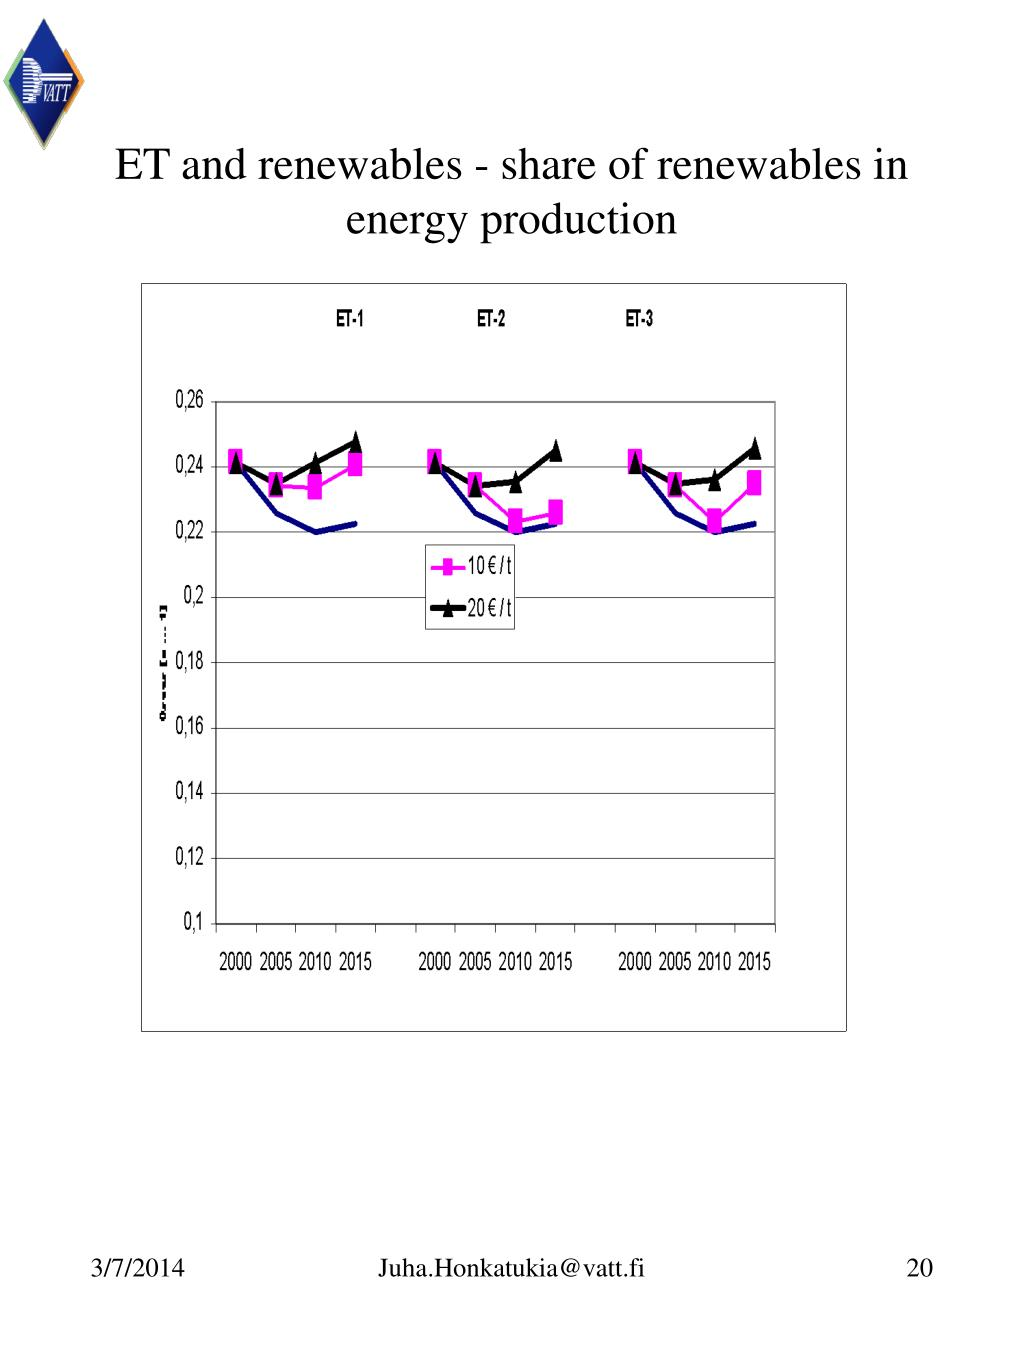 ET and renewables - share of renewables in energy production